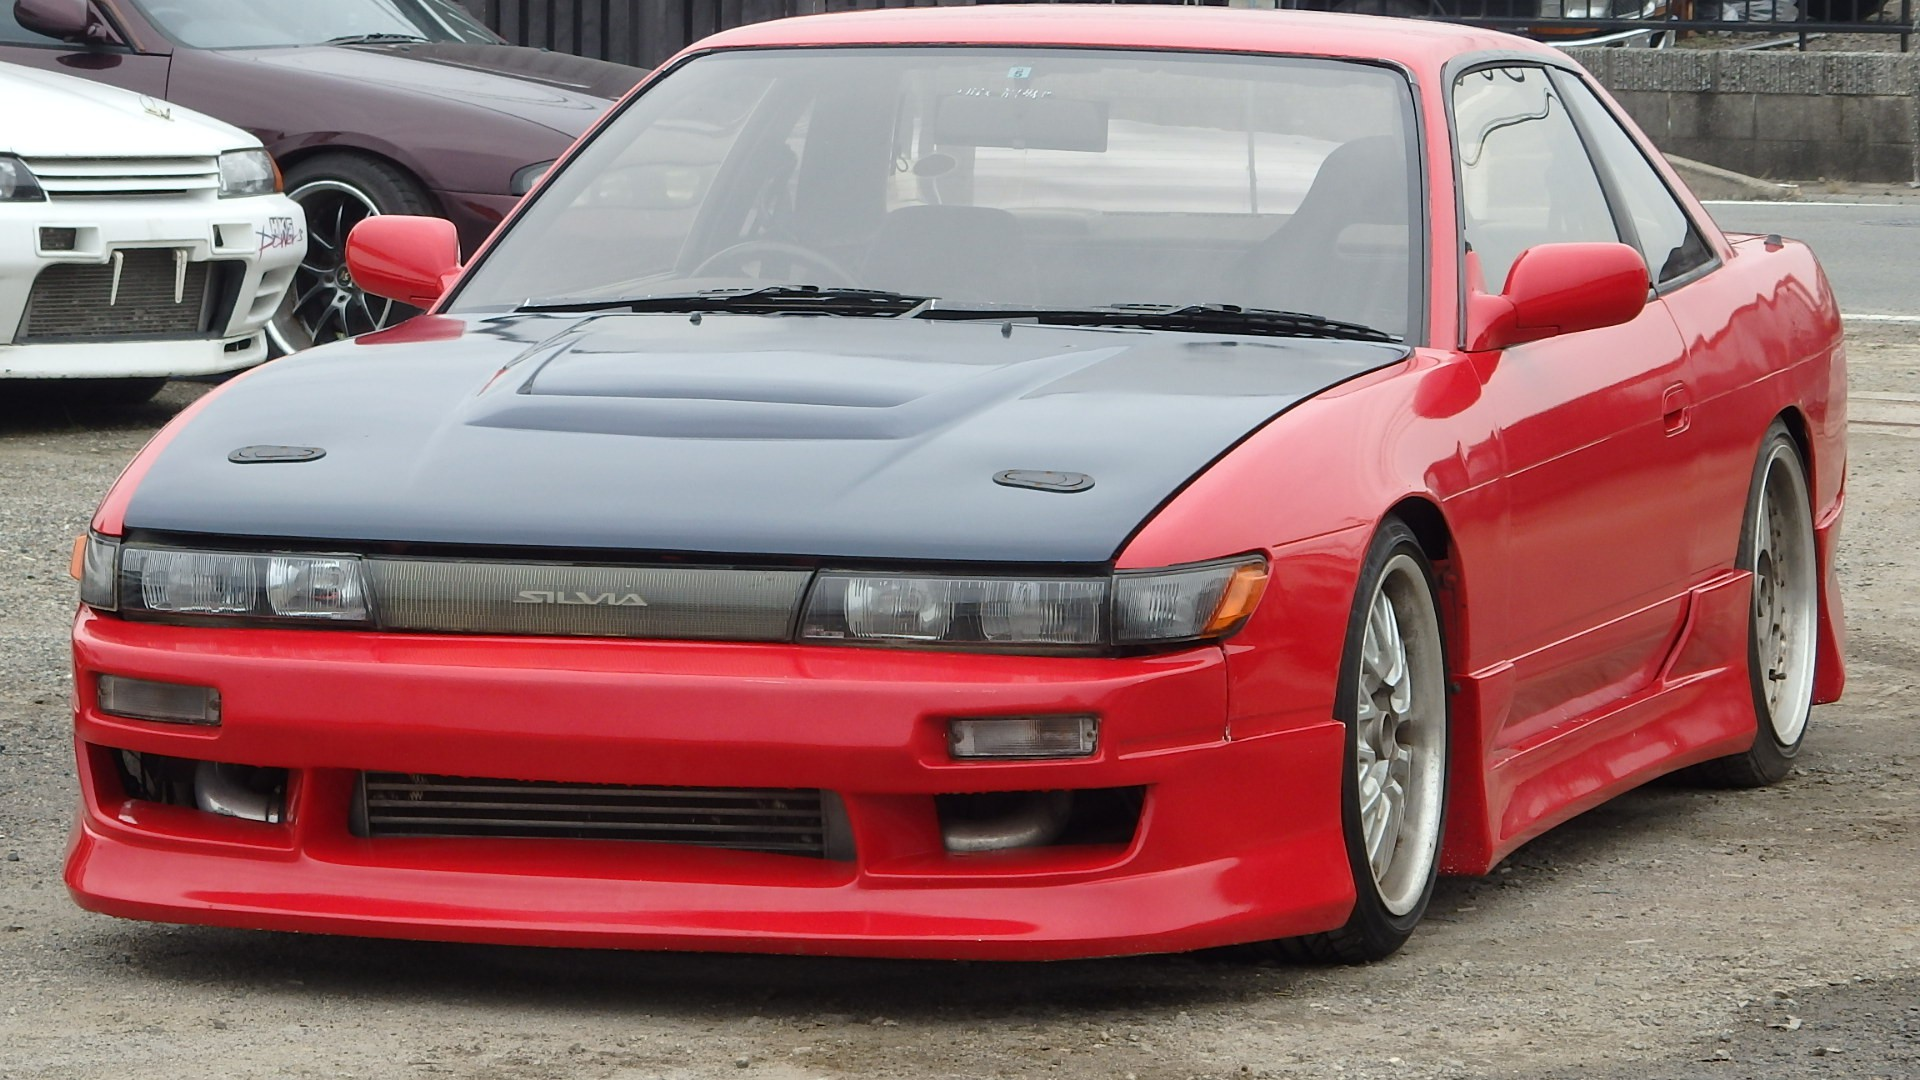 Nissan s13 Photo and Video Review  Comments